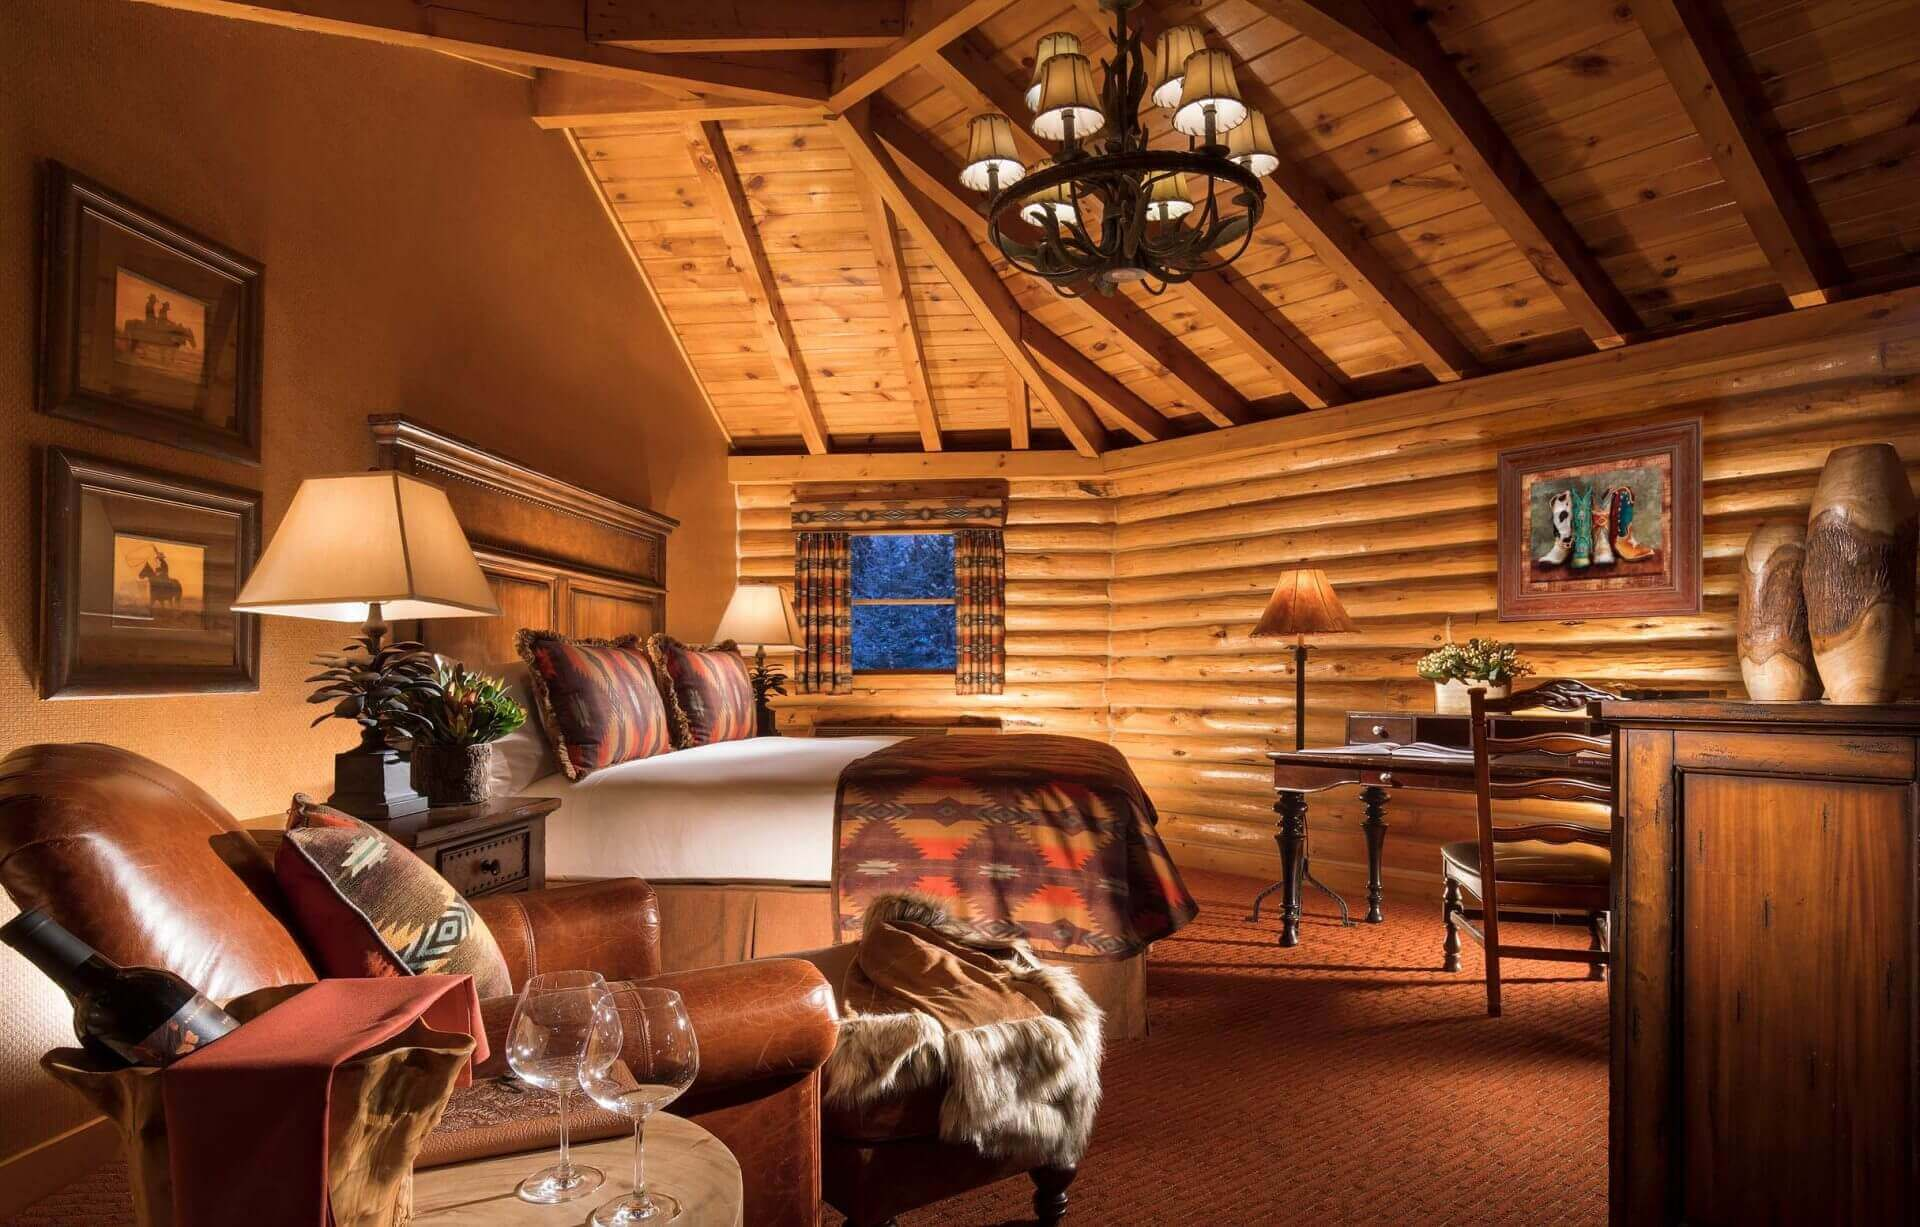 luxury hotel cabin with king bed and wooden log ceiling and walls